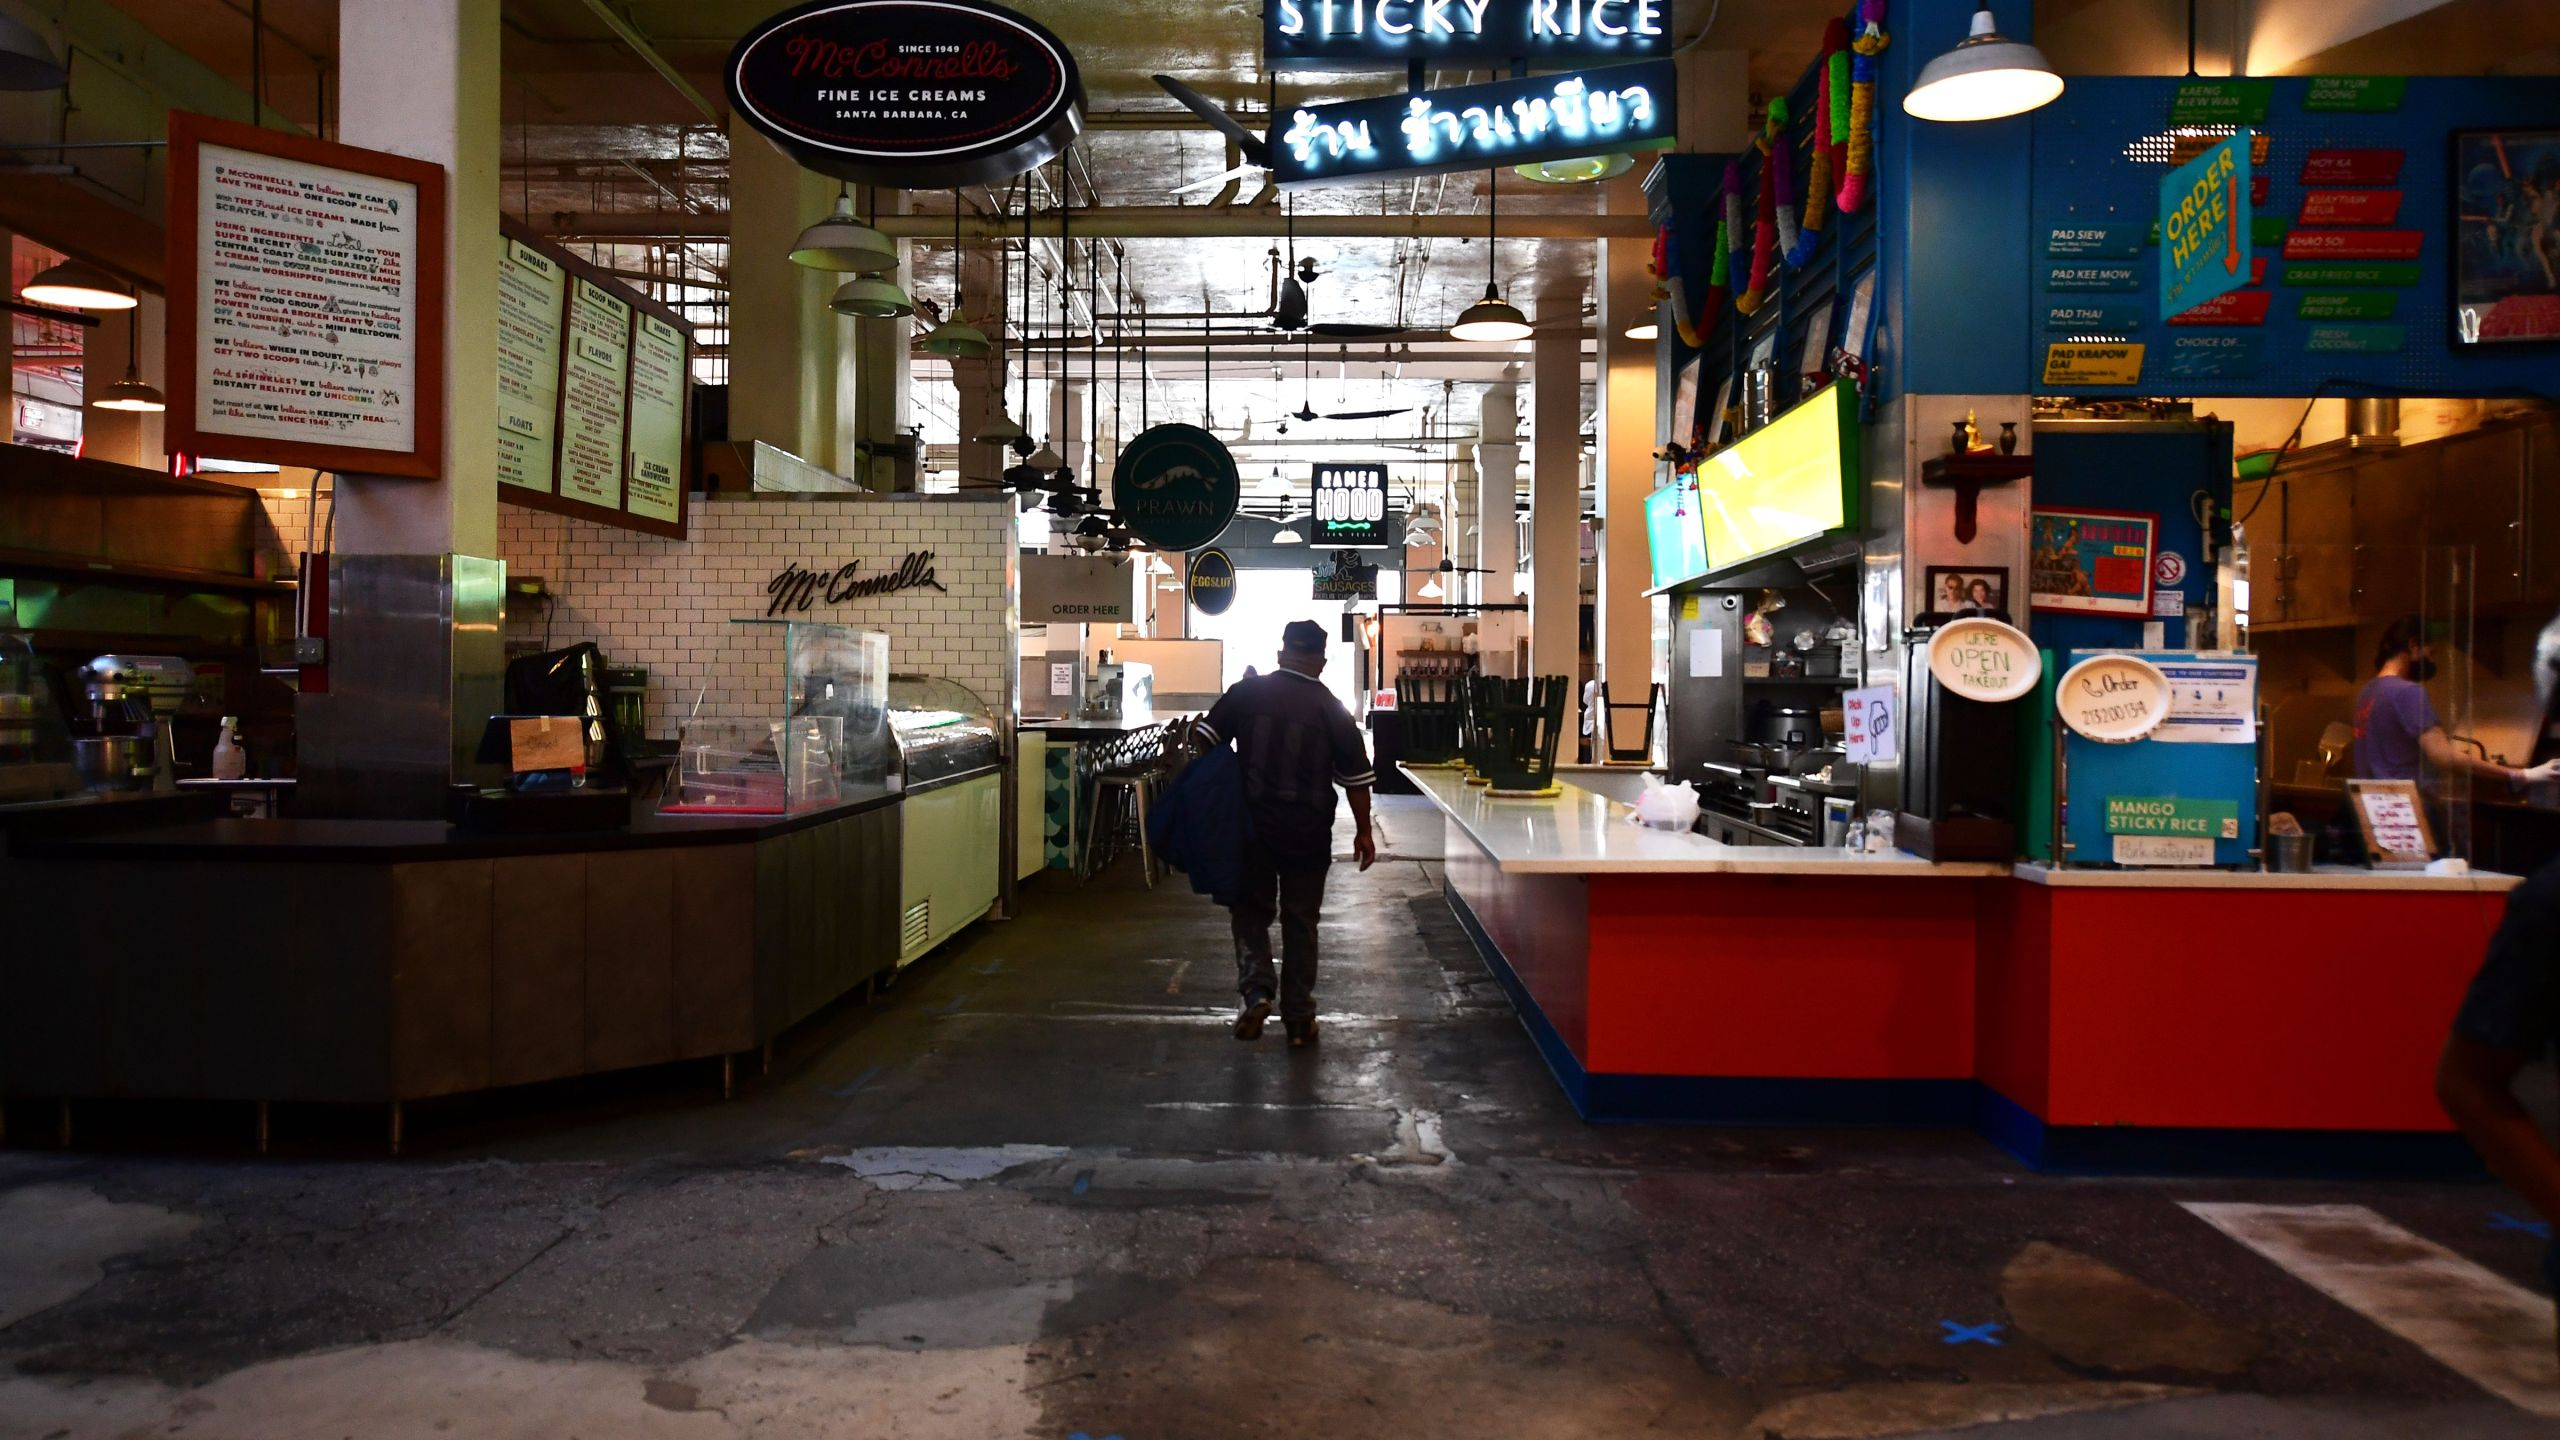 Some restaurants close as other remain open for takeout, observing new social distancing rules, with blue tape marked on the floor, at what would normally be a crowded lunctime scene at the Grand Central Market in Los Angeles, California on May 4, 2020. (FREDERIC J. BROWN/AFP via Getty Images)